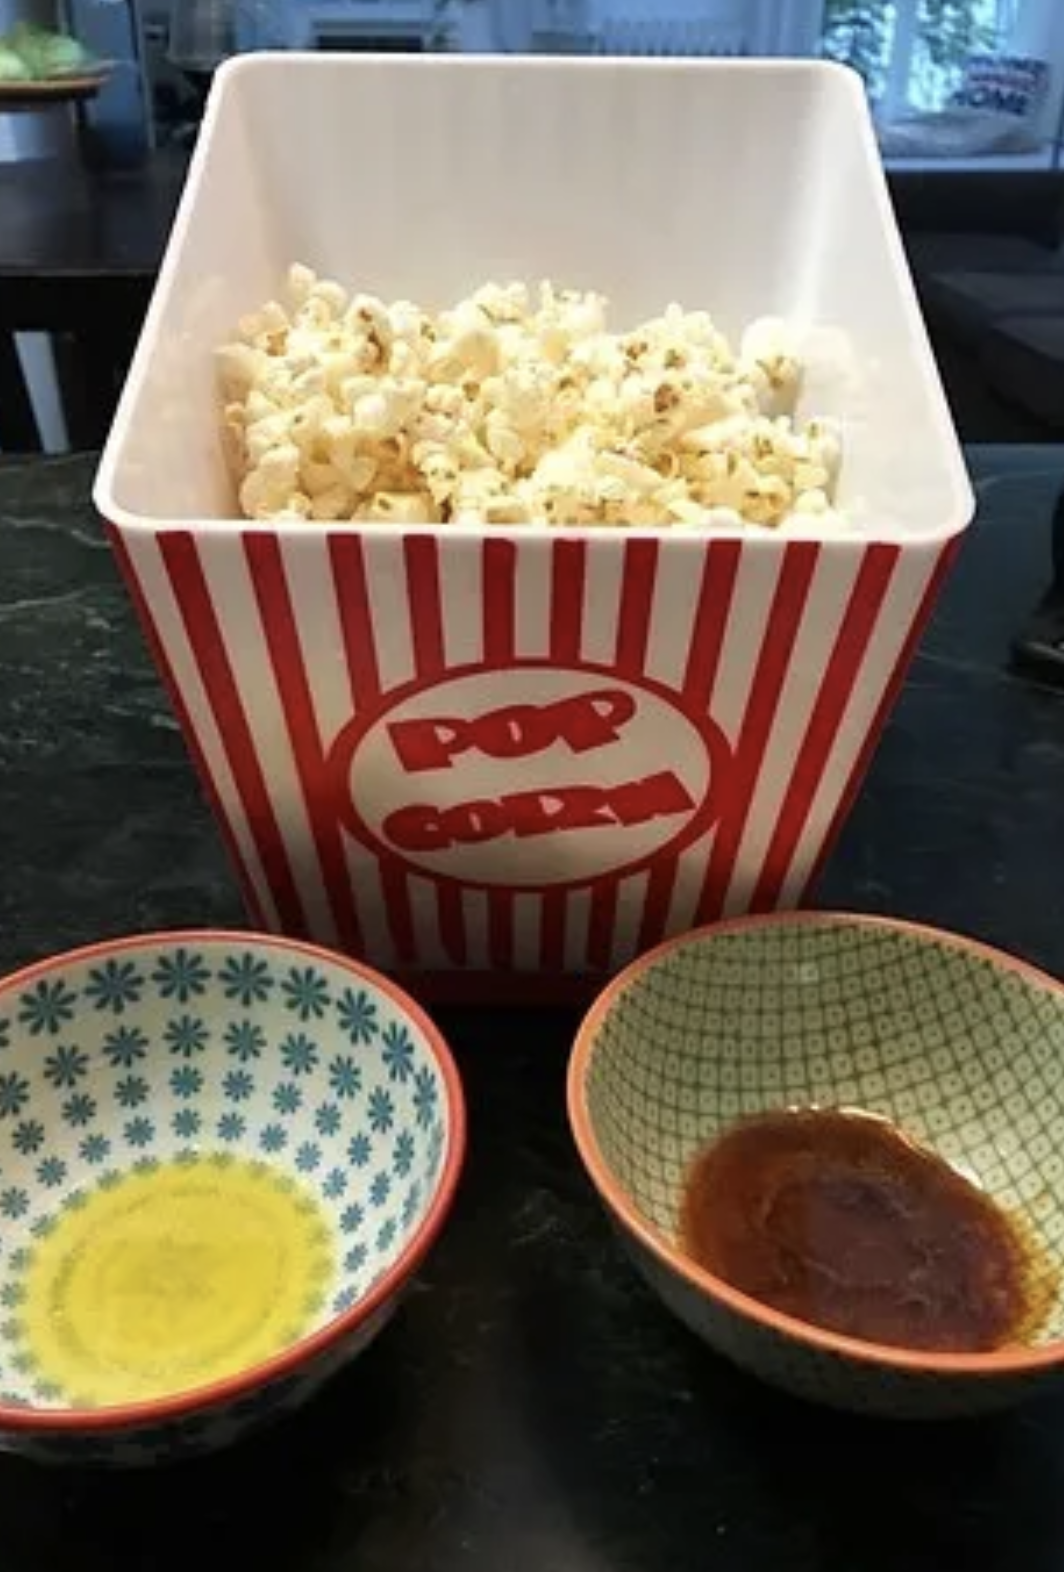 Popcorn, butter, and soy sauce.